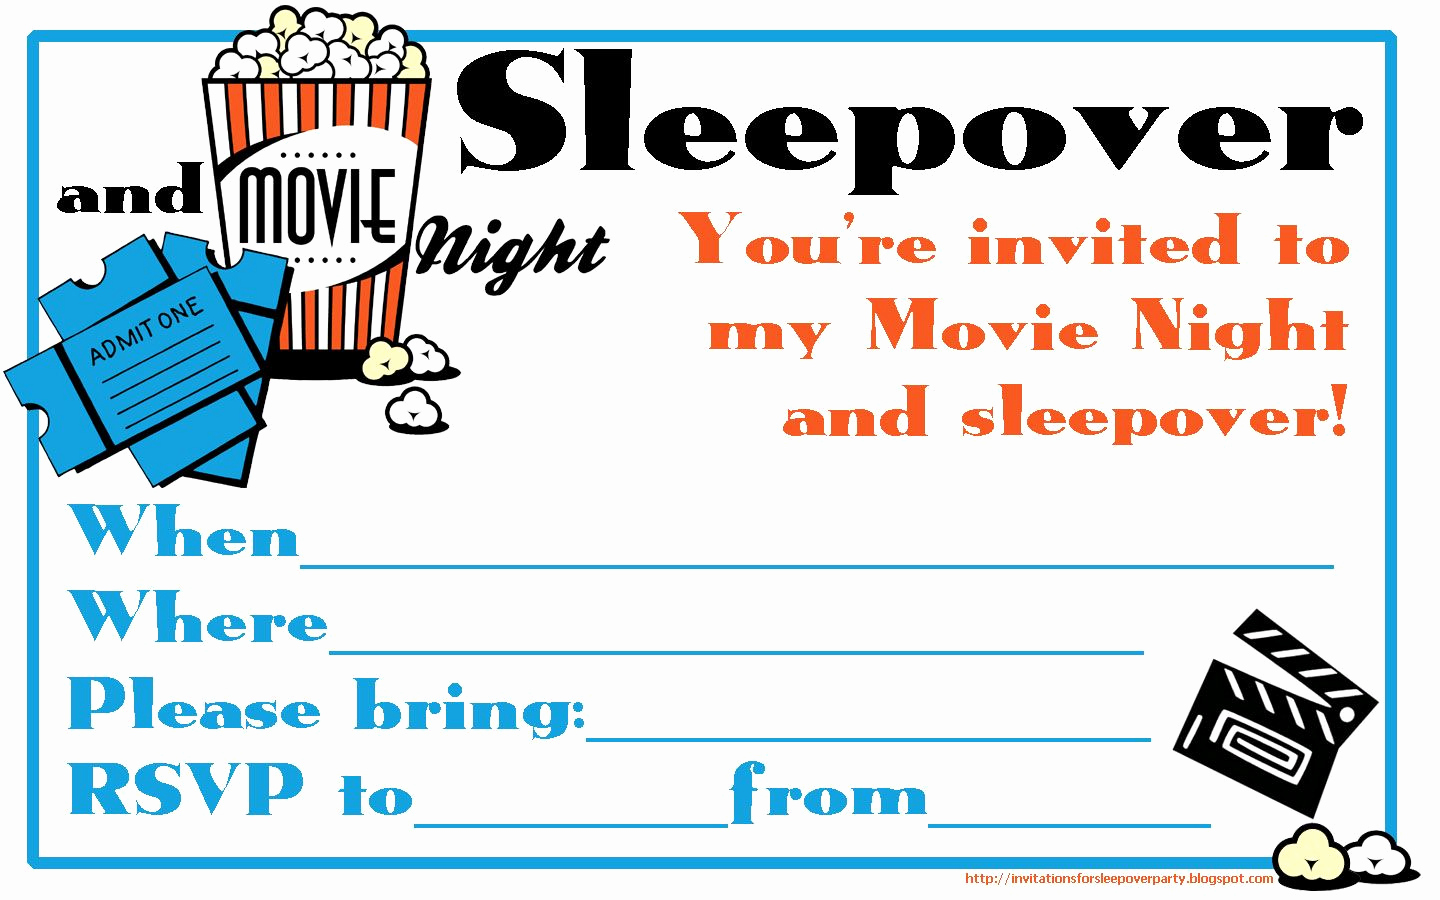 Free Sleepover Invitation Template Awesome Fill the Blanks On This Movie Night and Sleepover